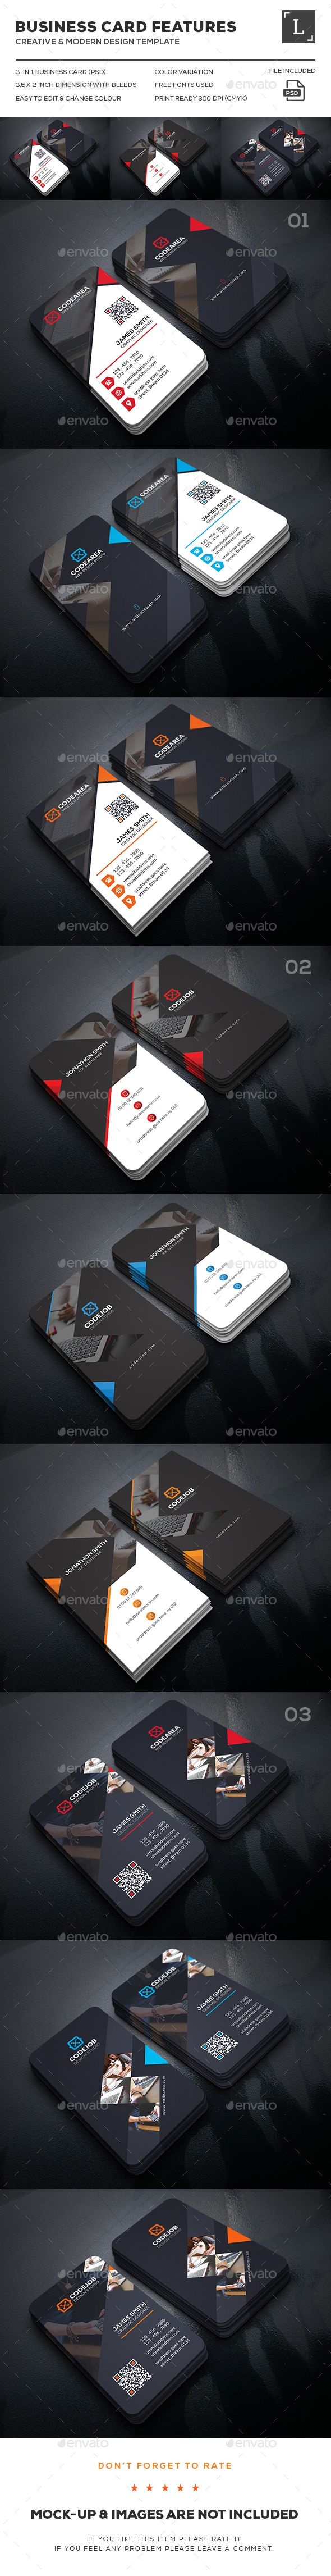 Business Card Bundle Templates PSD. Download here: http://graphicriver.net/item/business-card-bundle/16082119?ref=ksioks